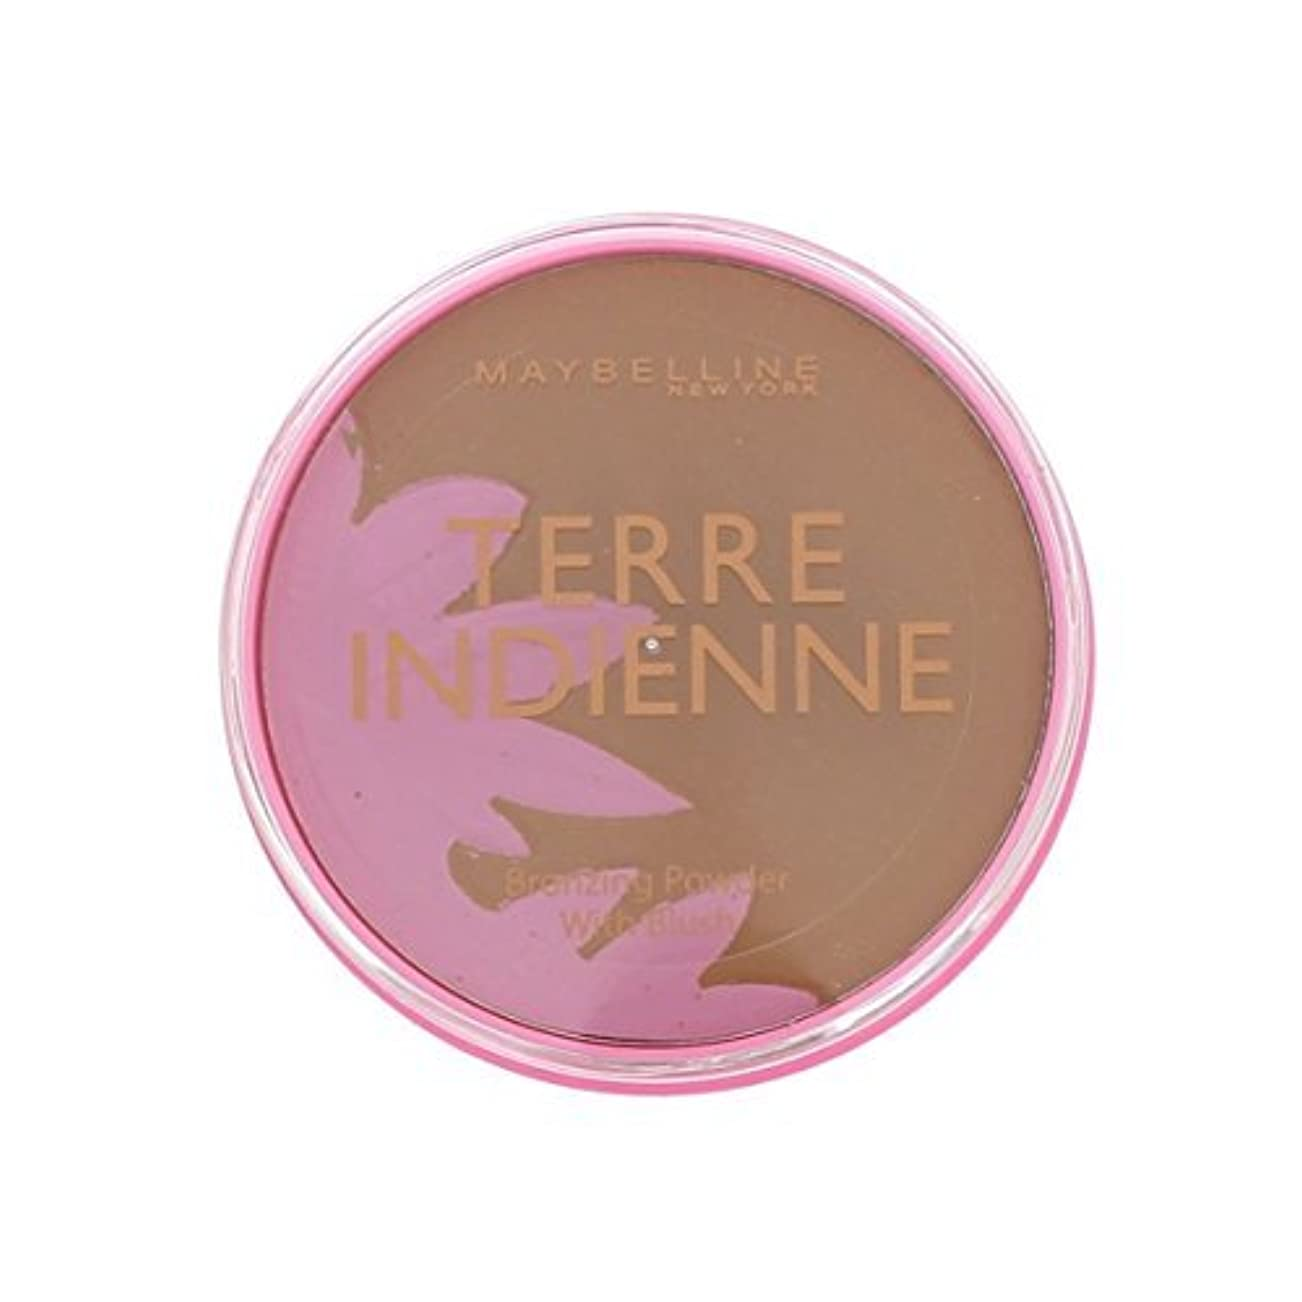 Poudre de Soleil Terre Indienne Gemey Maybelline - 08 Bronzed Paradise by Maybelline